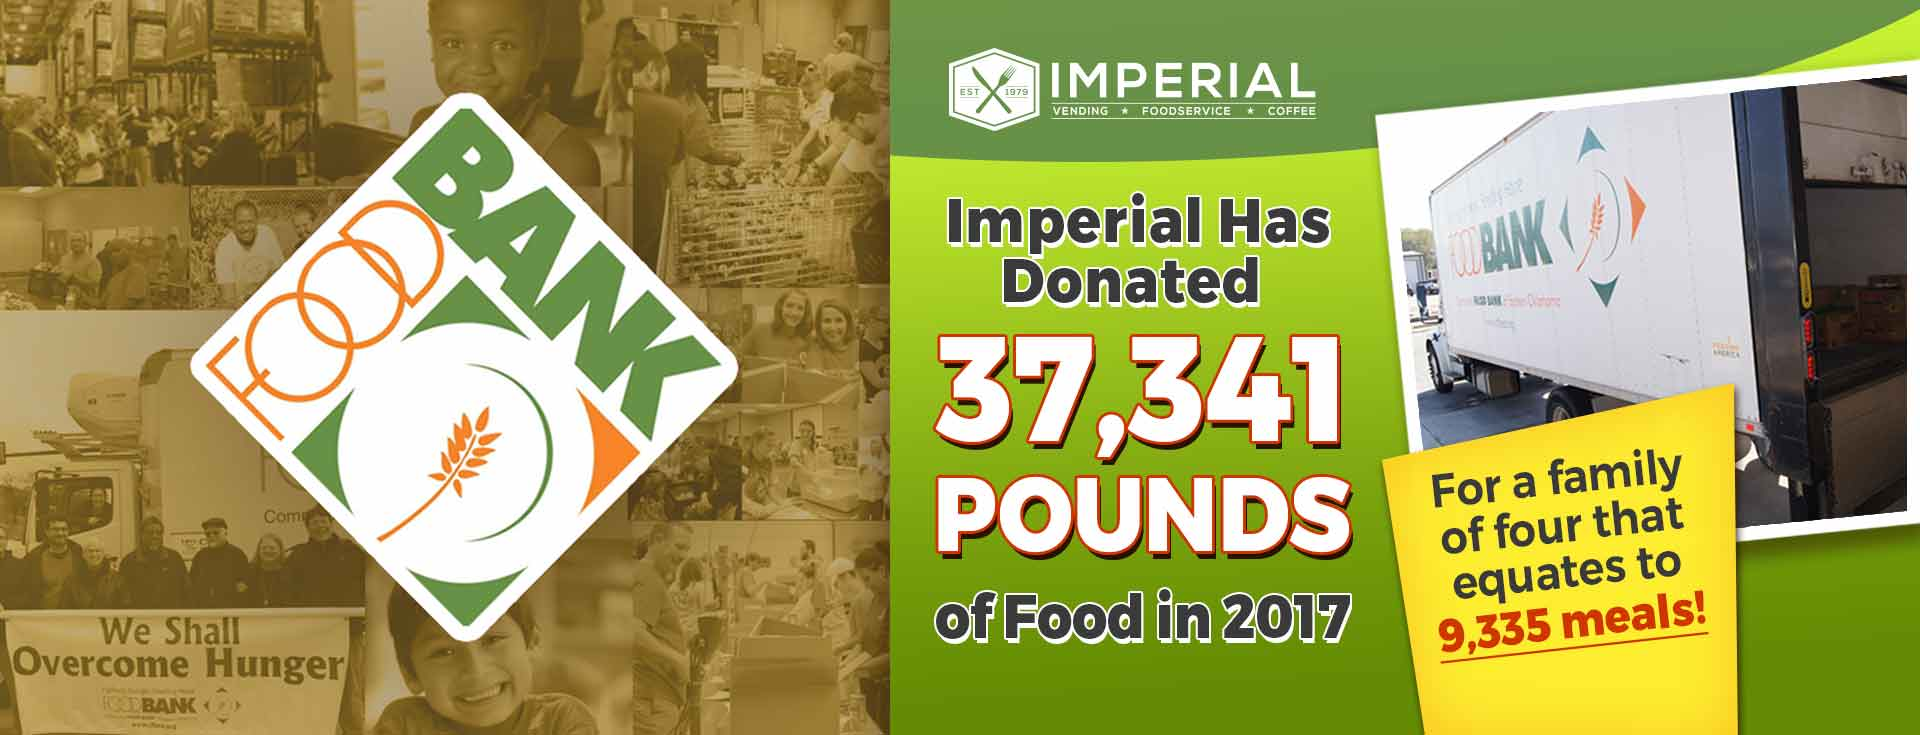 food donations 2017